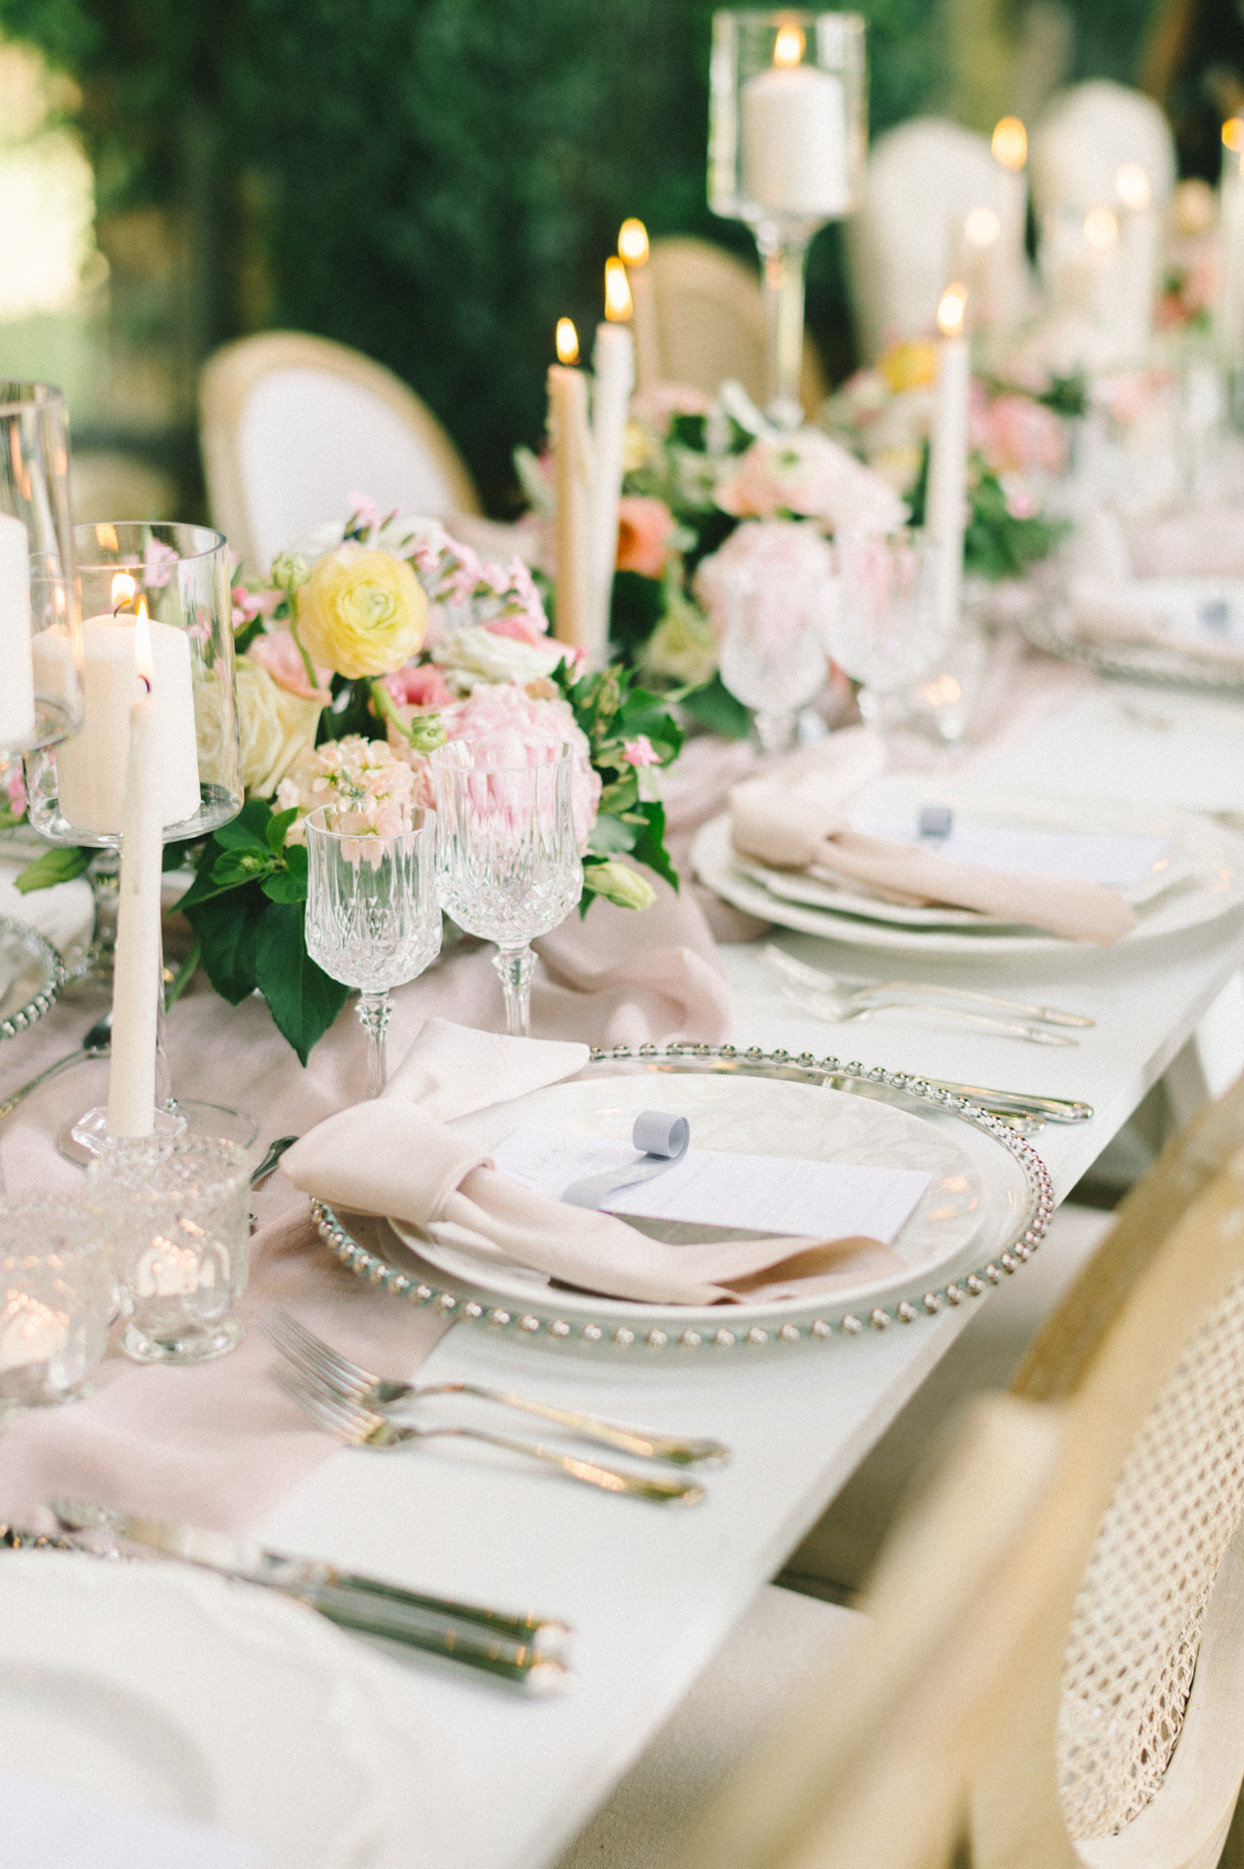 wedding place setting with cream and blush color scheme and florals